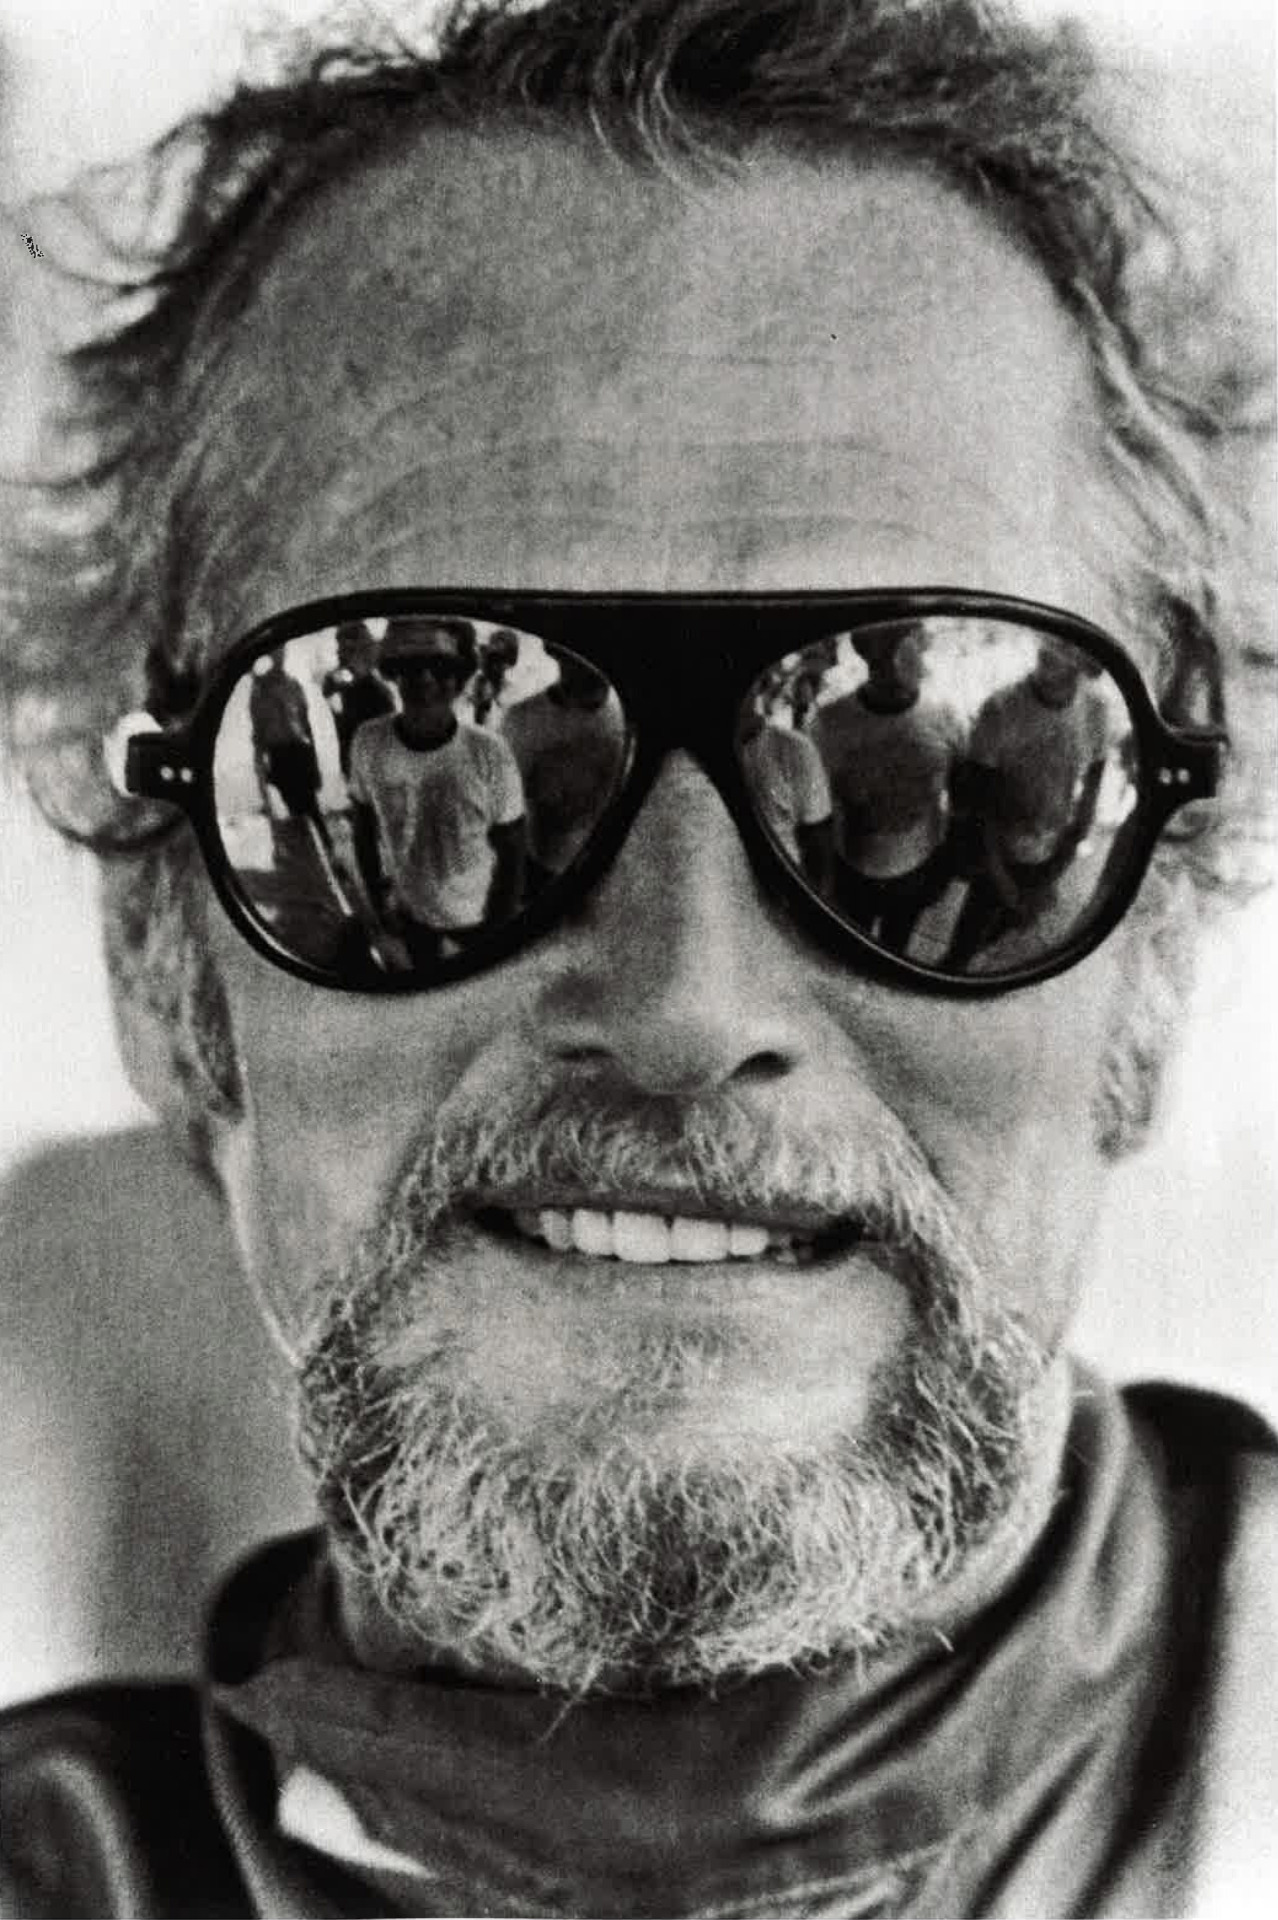 Paul Newman in shades.